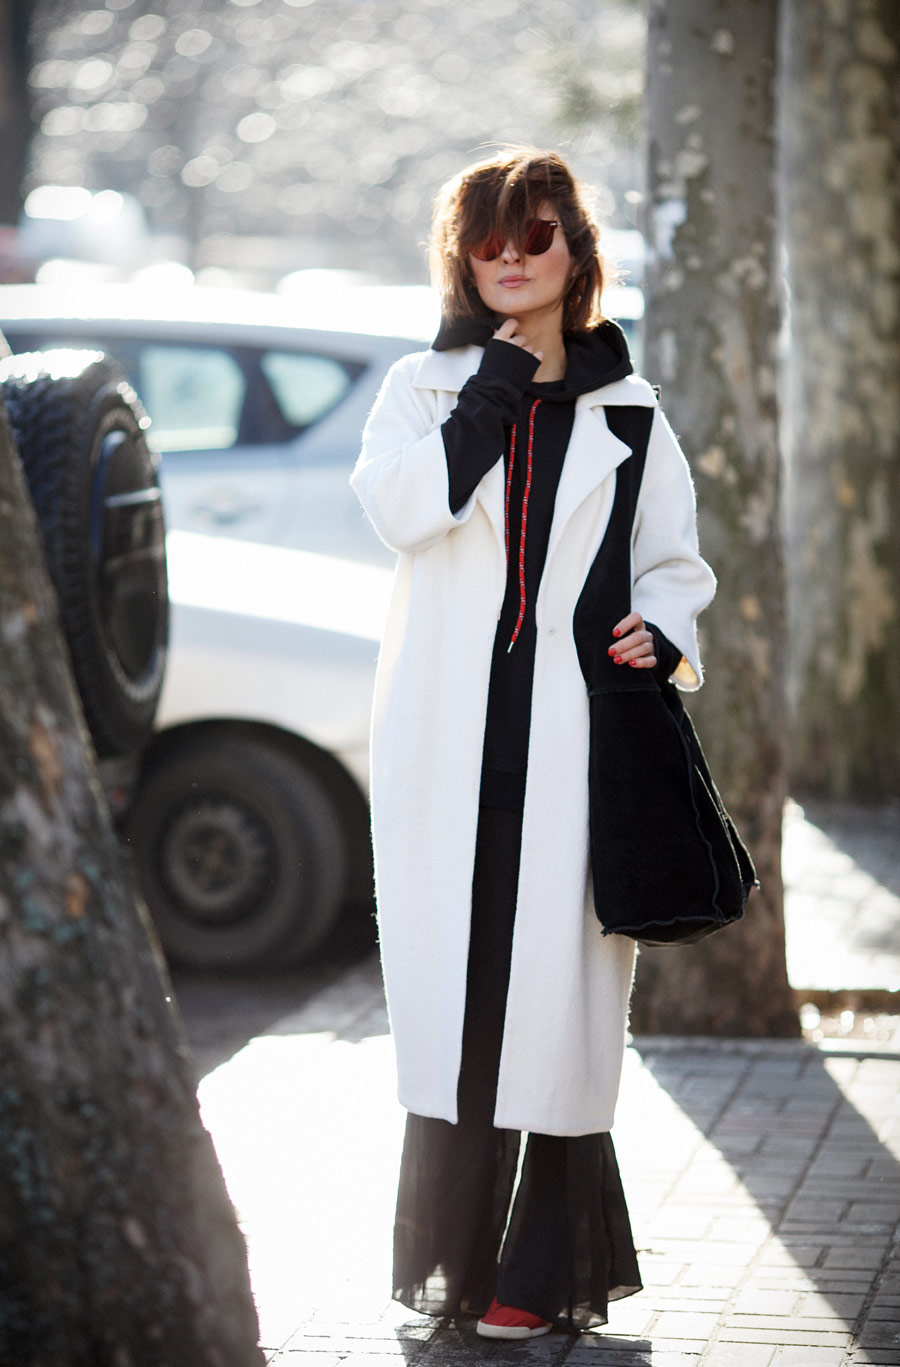 white coat outfit, sporty chic style outfit,